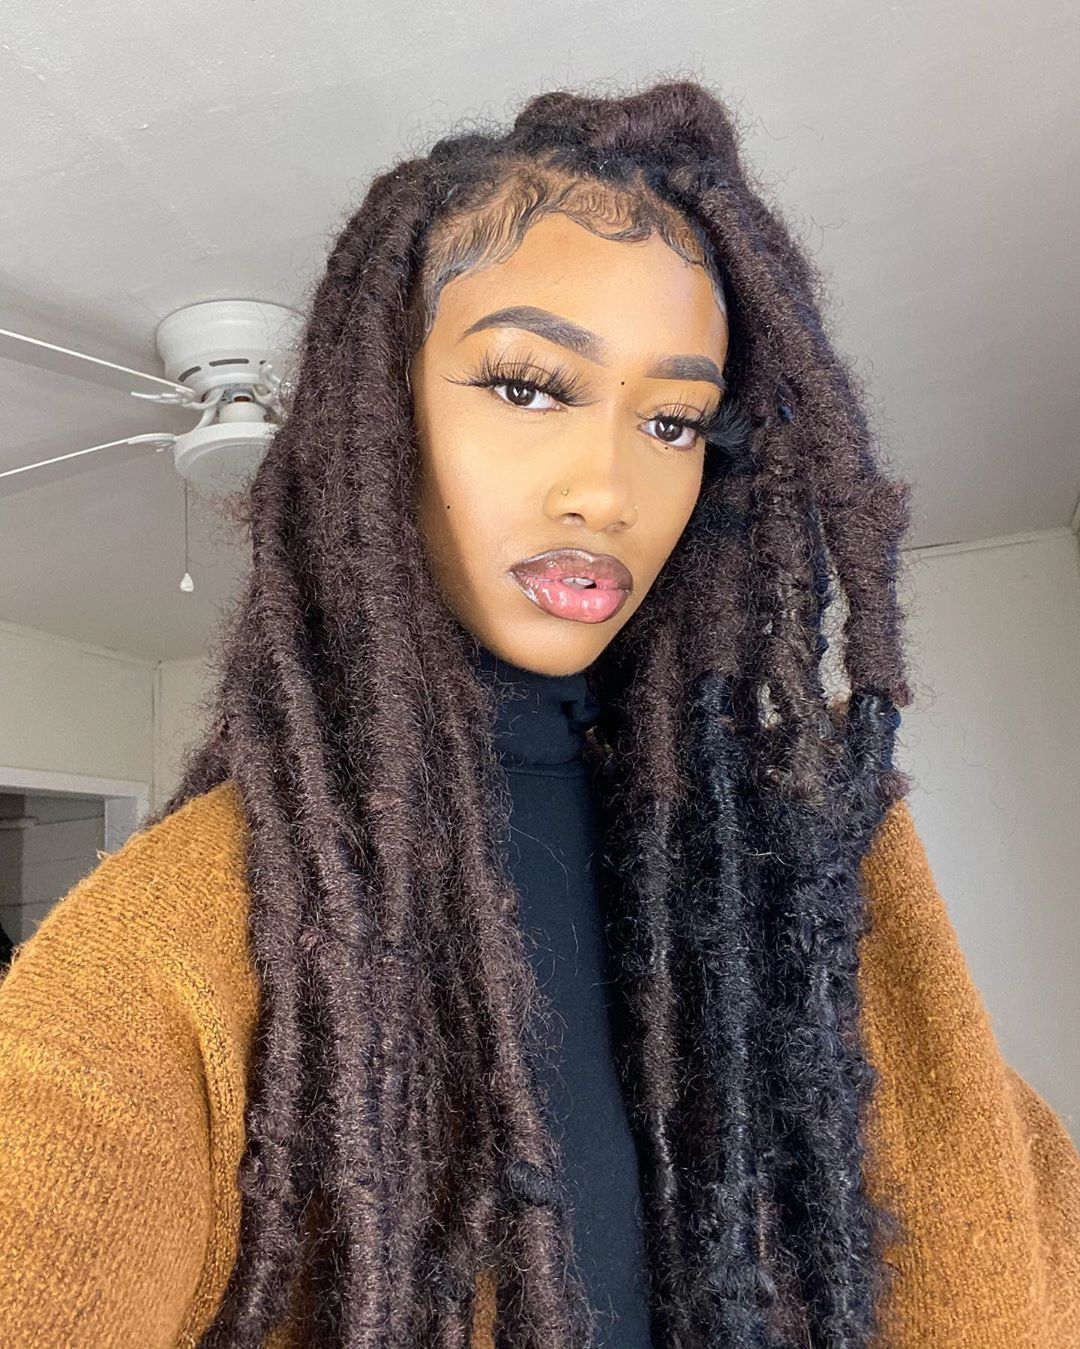 Hair Page For Flex On Instagram Jumbo Marley Locs I M Still Doing Hair In April Let S Just All Stay Clean Ladies Locs M Locs Hair Cleaning Lady